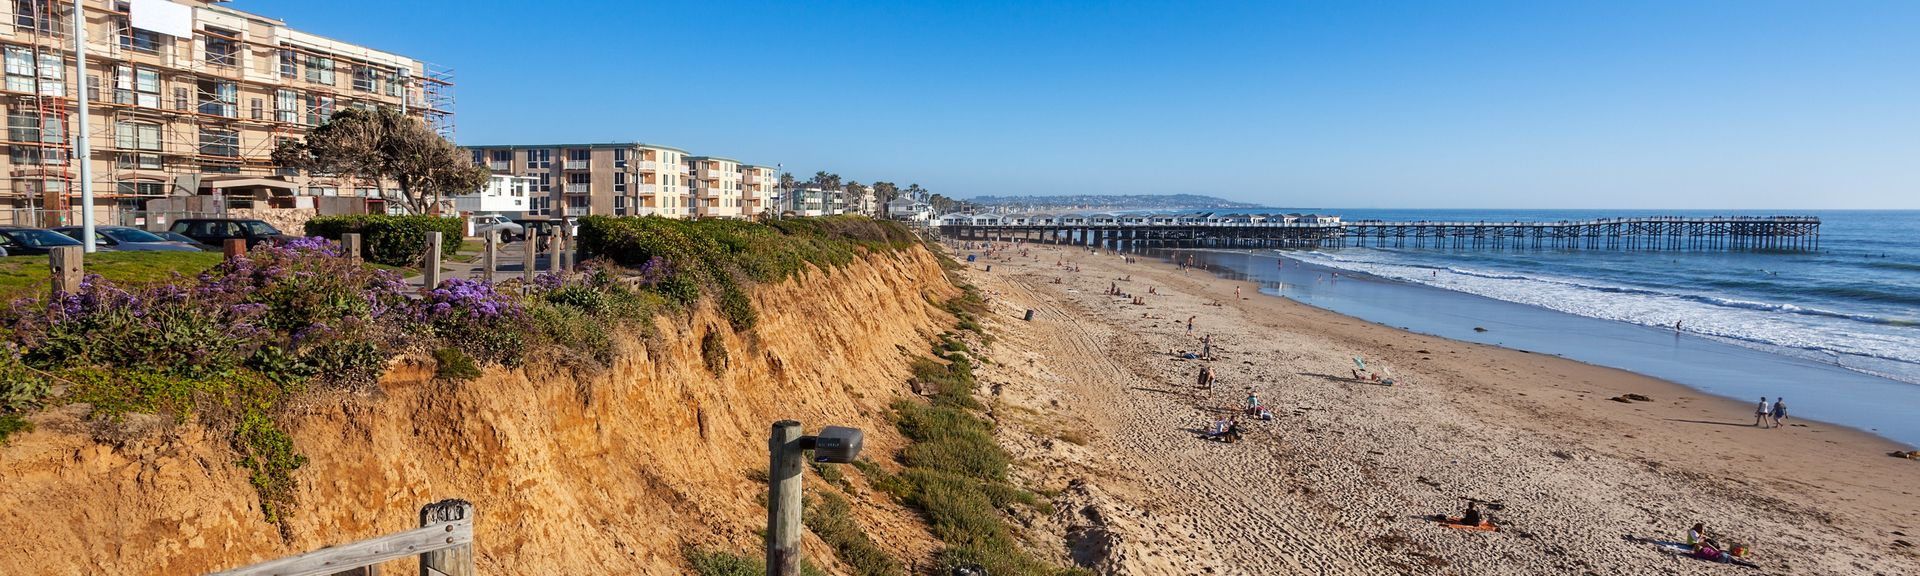 Mission Beach, San Diego, California, United States of America